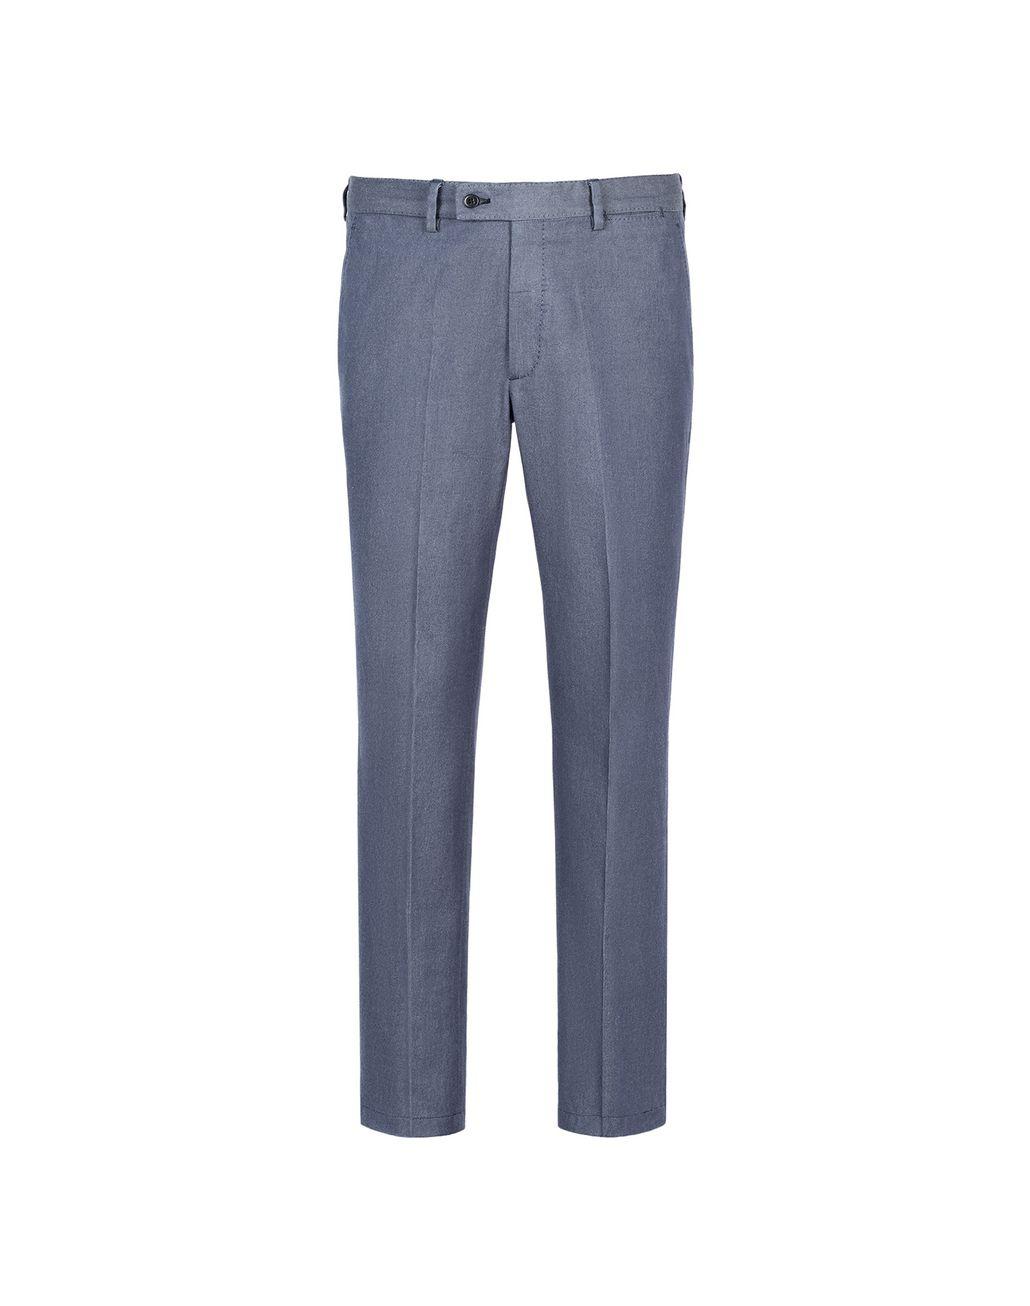 BRIONI Denim Blue Tignes Chino Trousers Trousers Man f